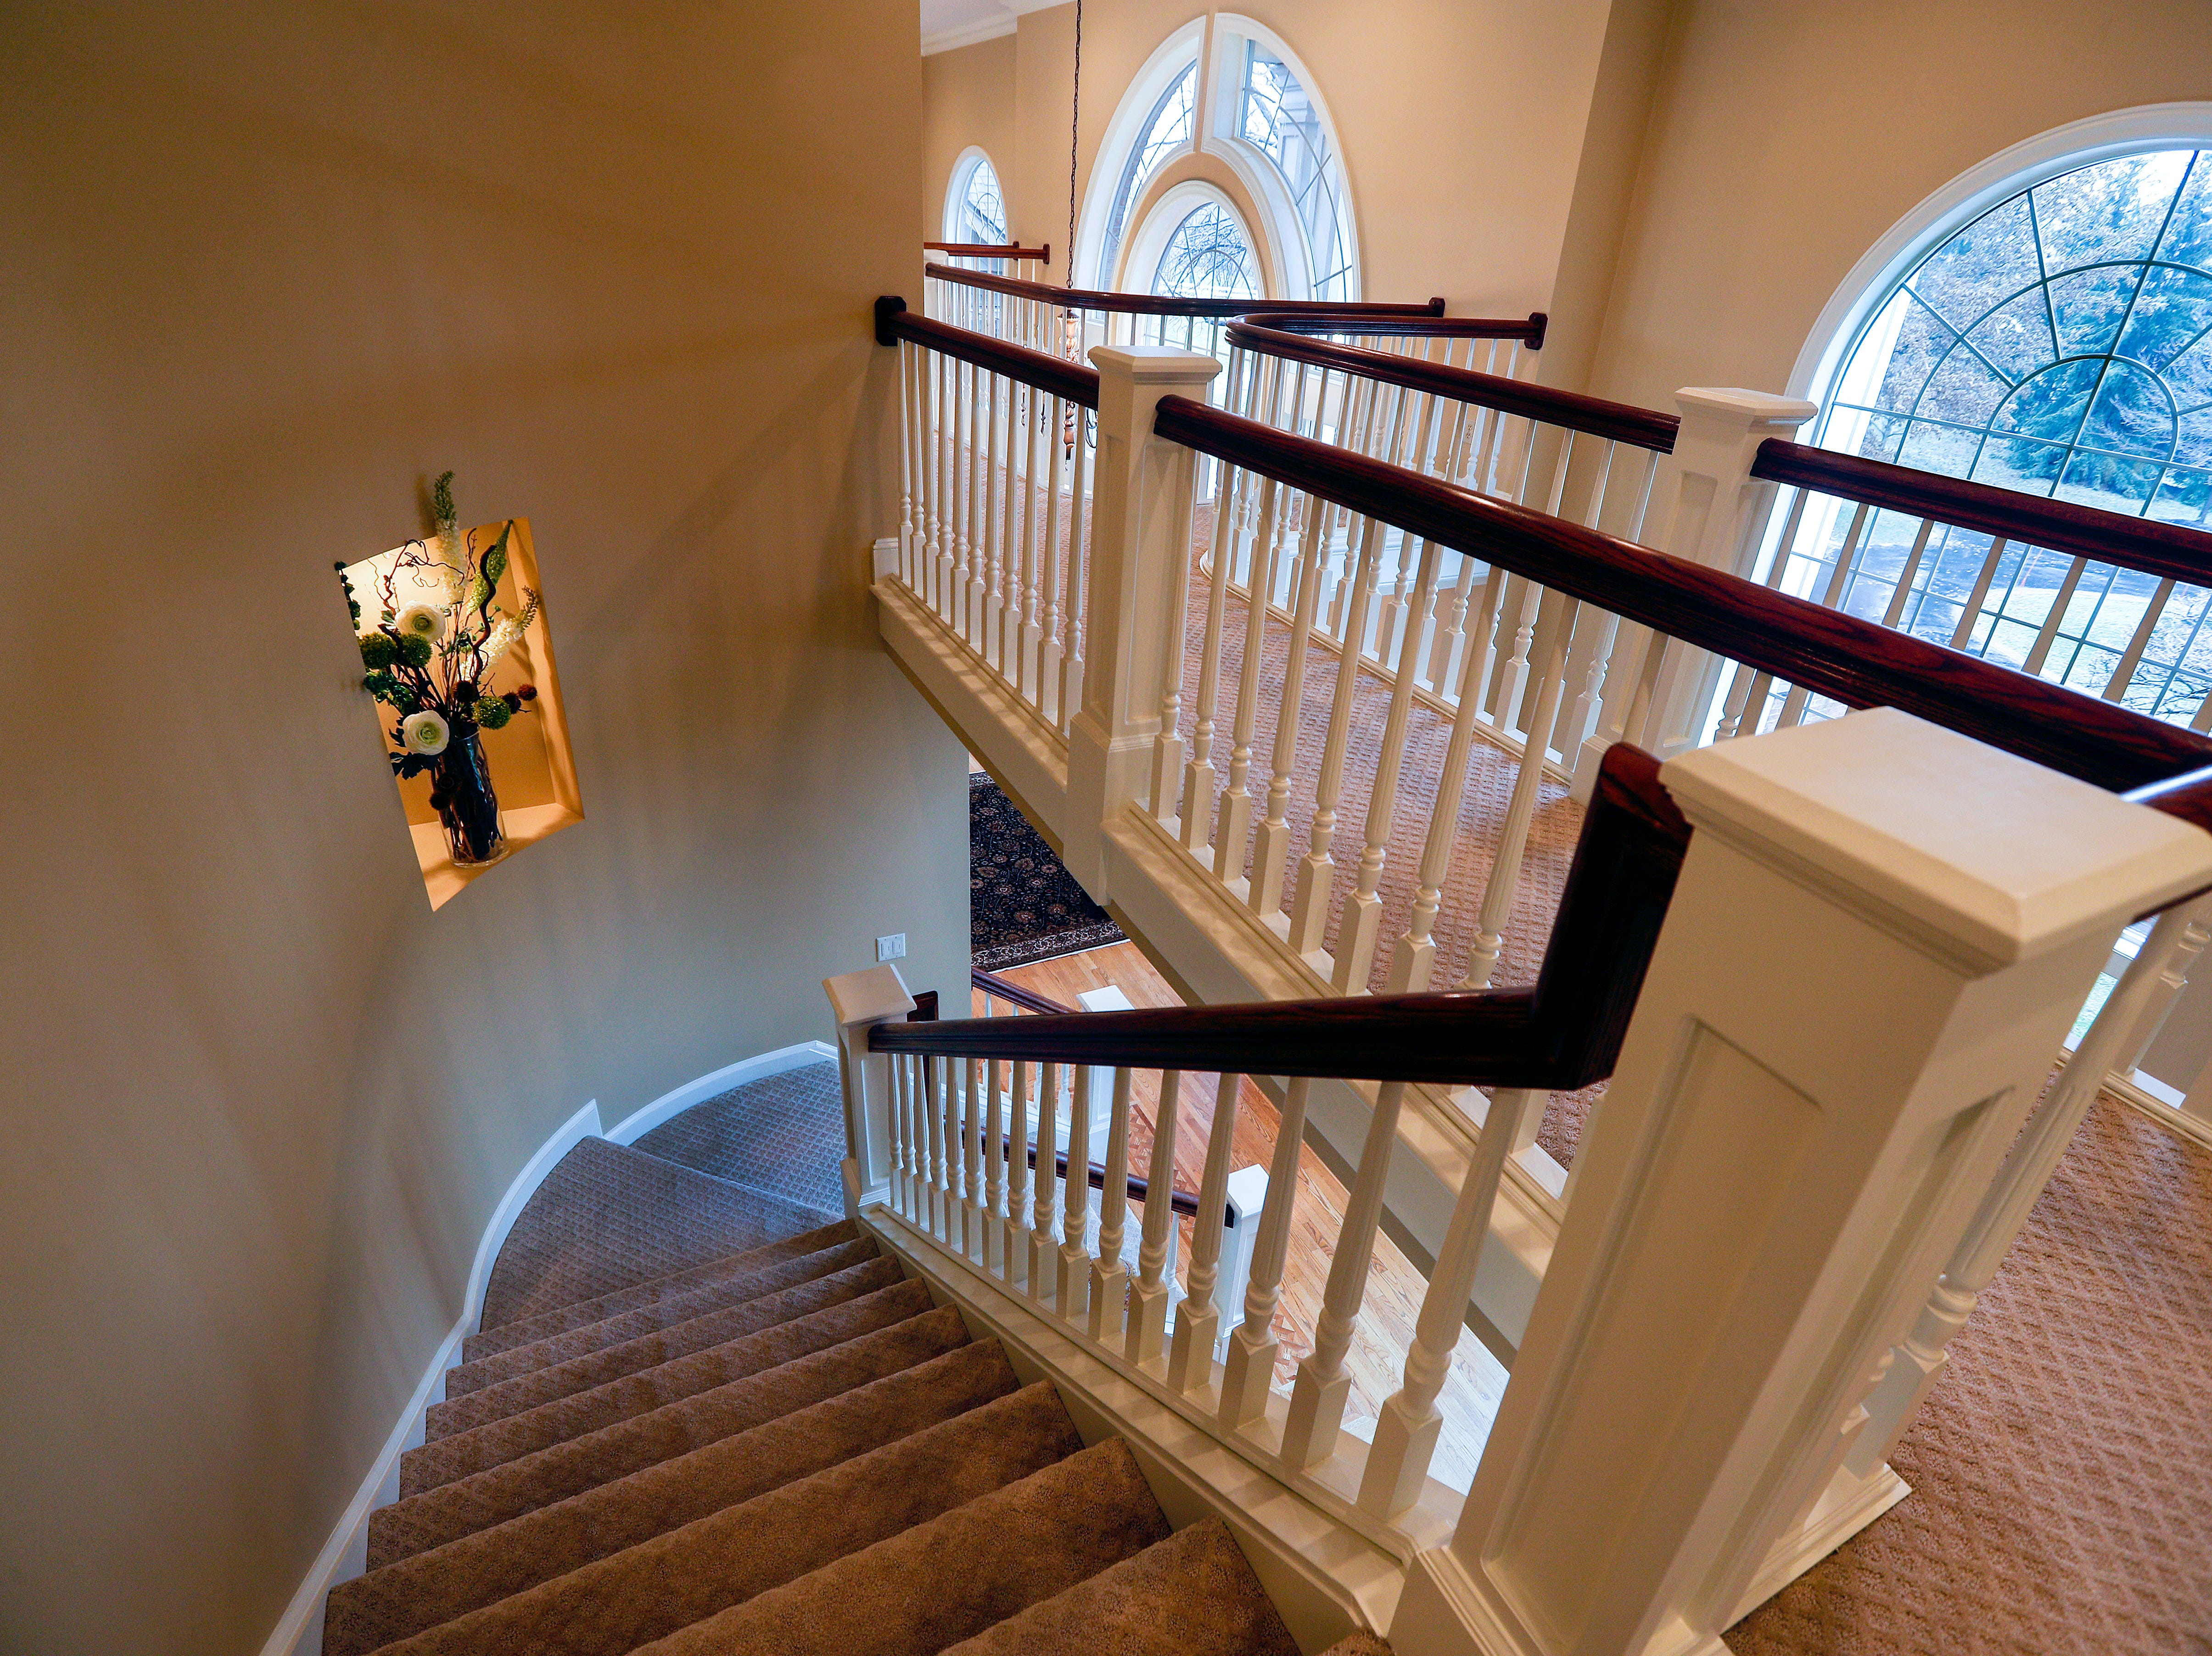 A stairway connects rooms on both sides of the house.